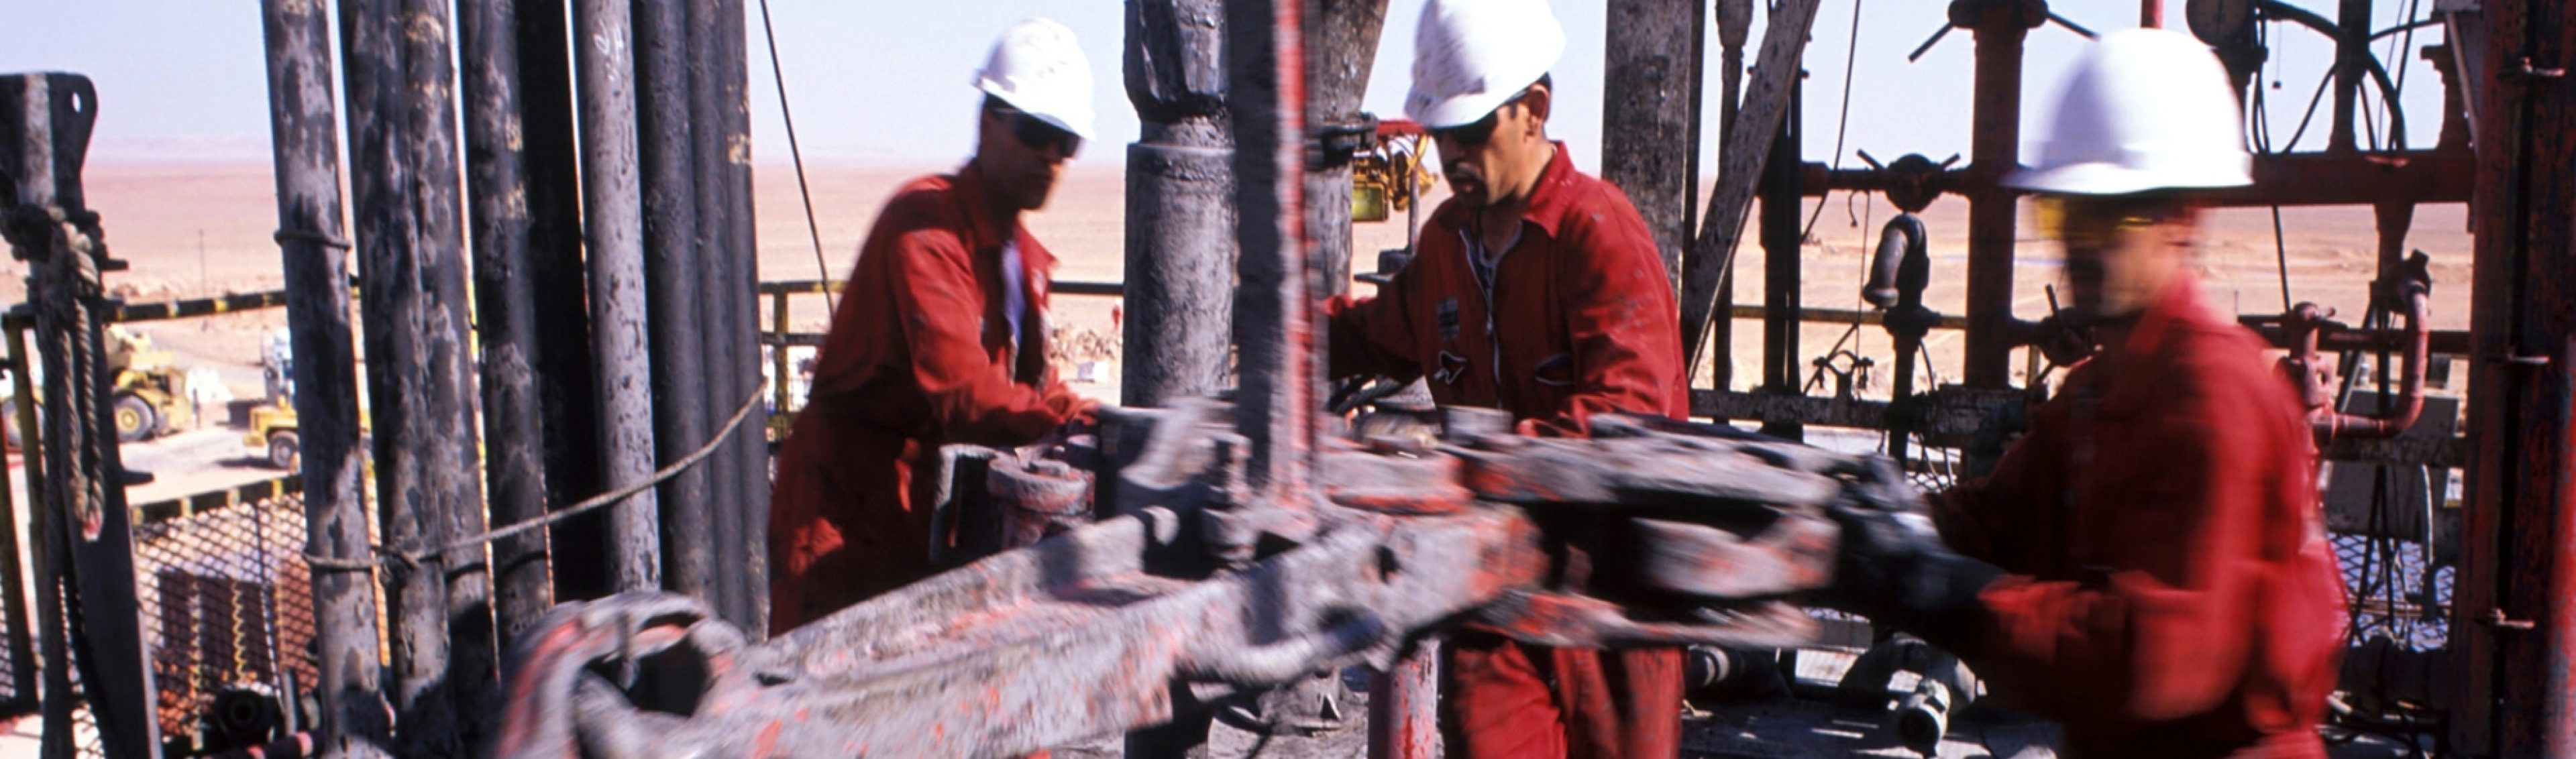 Operators working on the drill floor of Rig Teg 18 at the In Salah gas drill site in Algeria.